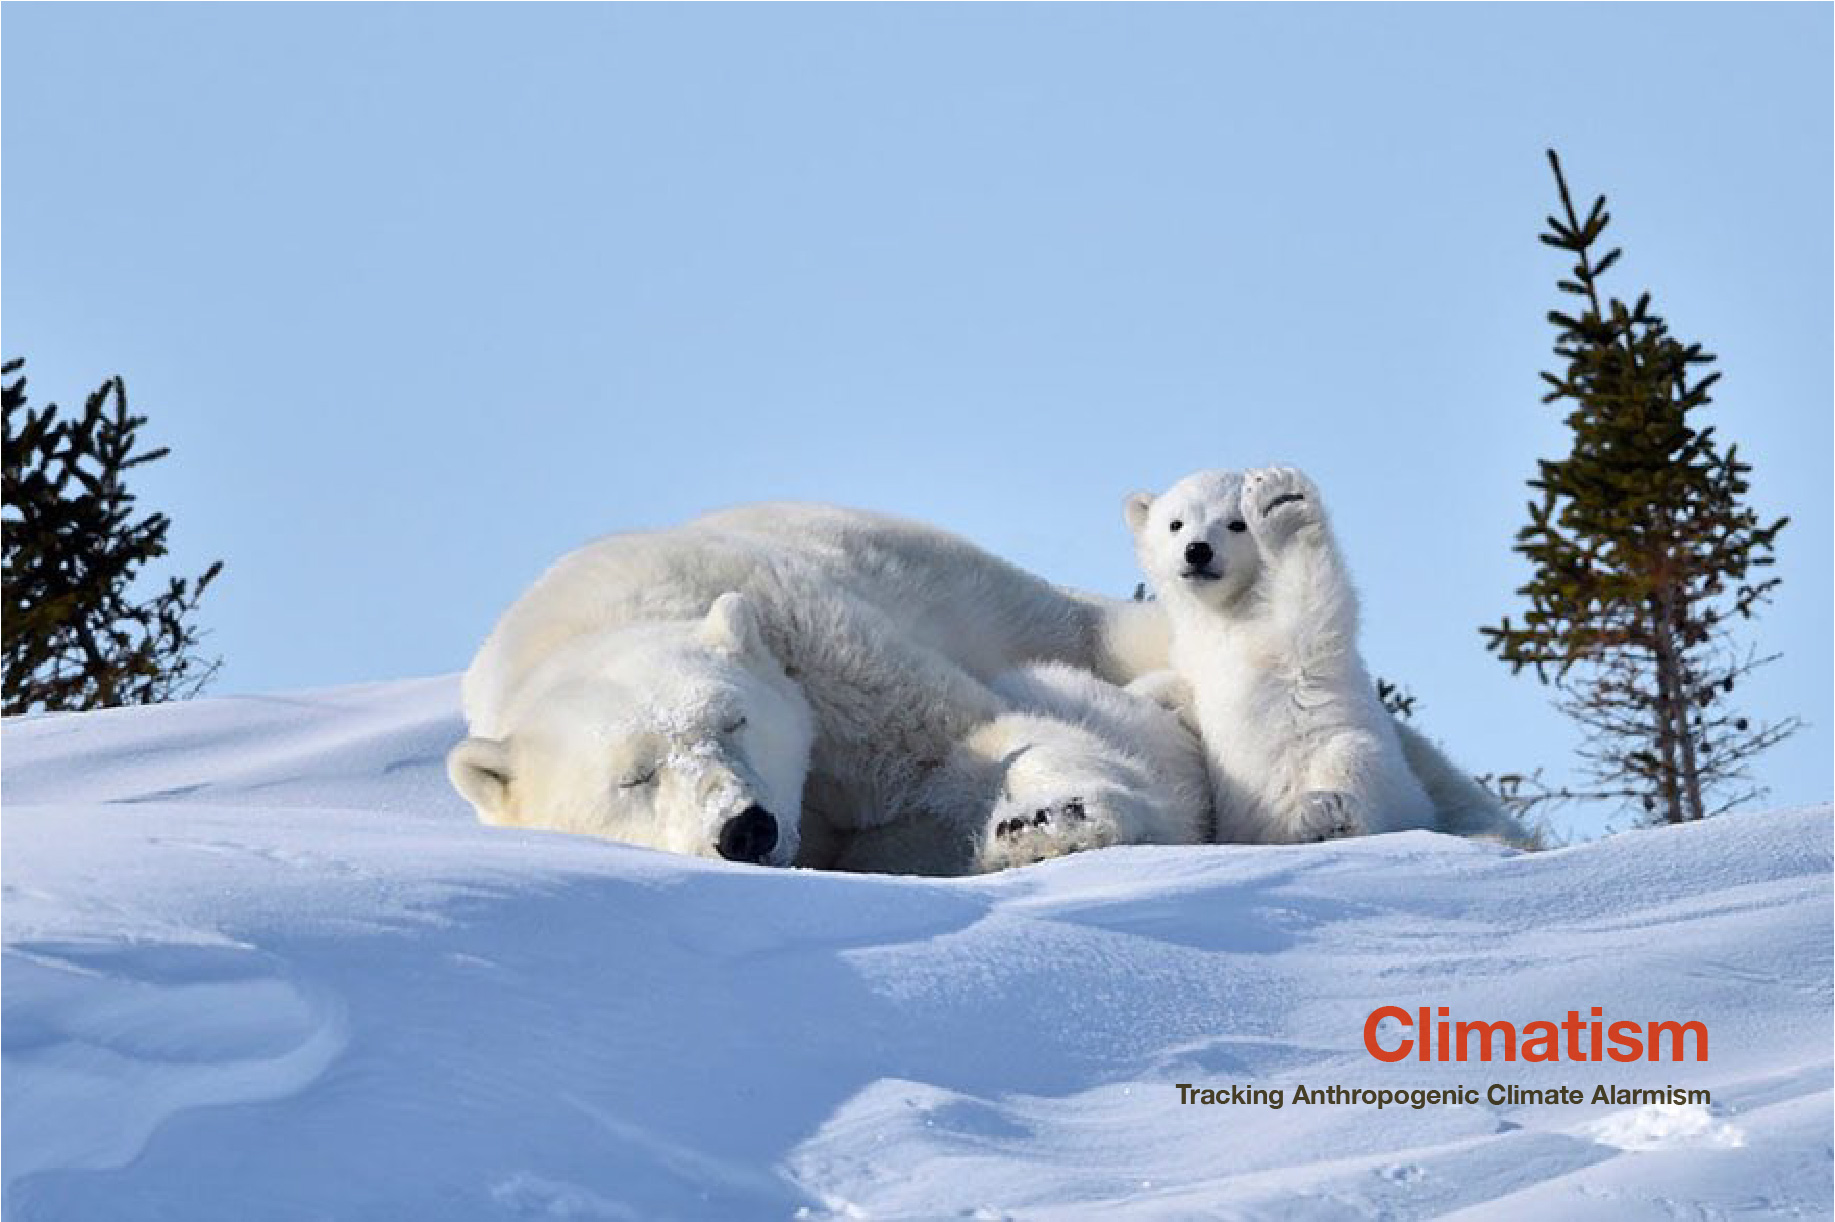 POLAR BEARS - The New Symbol Of Climate Change Realism and A Stable Arctic | CLIMATISM